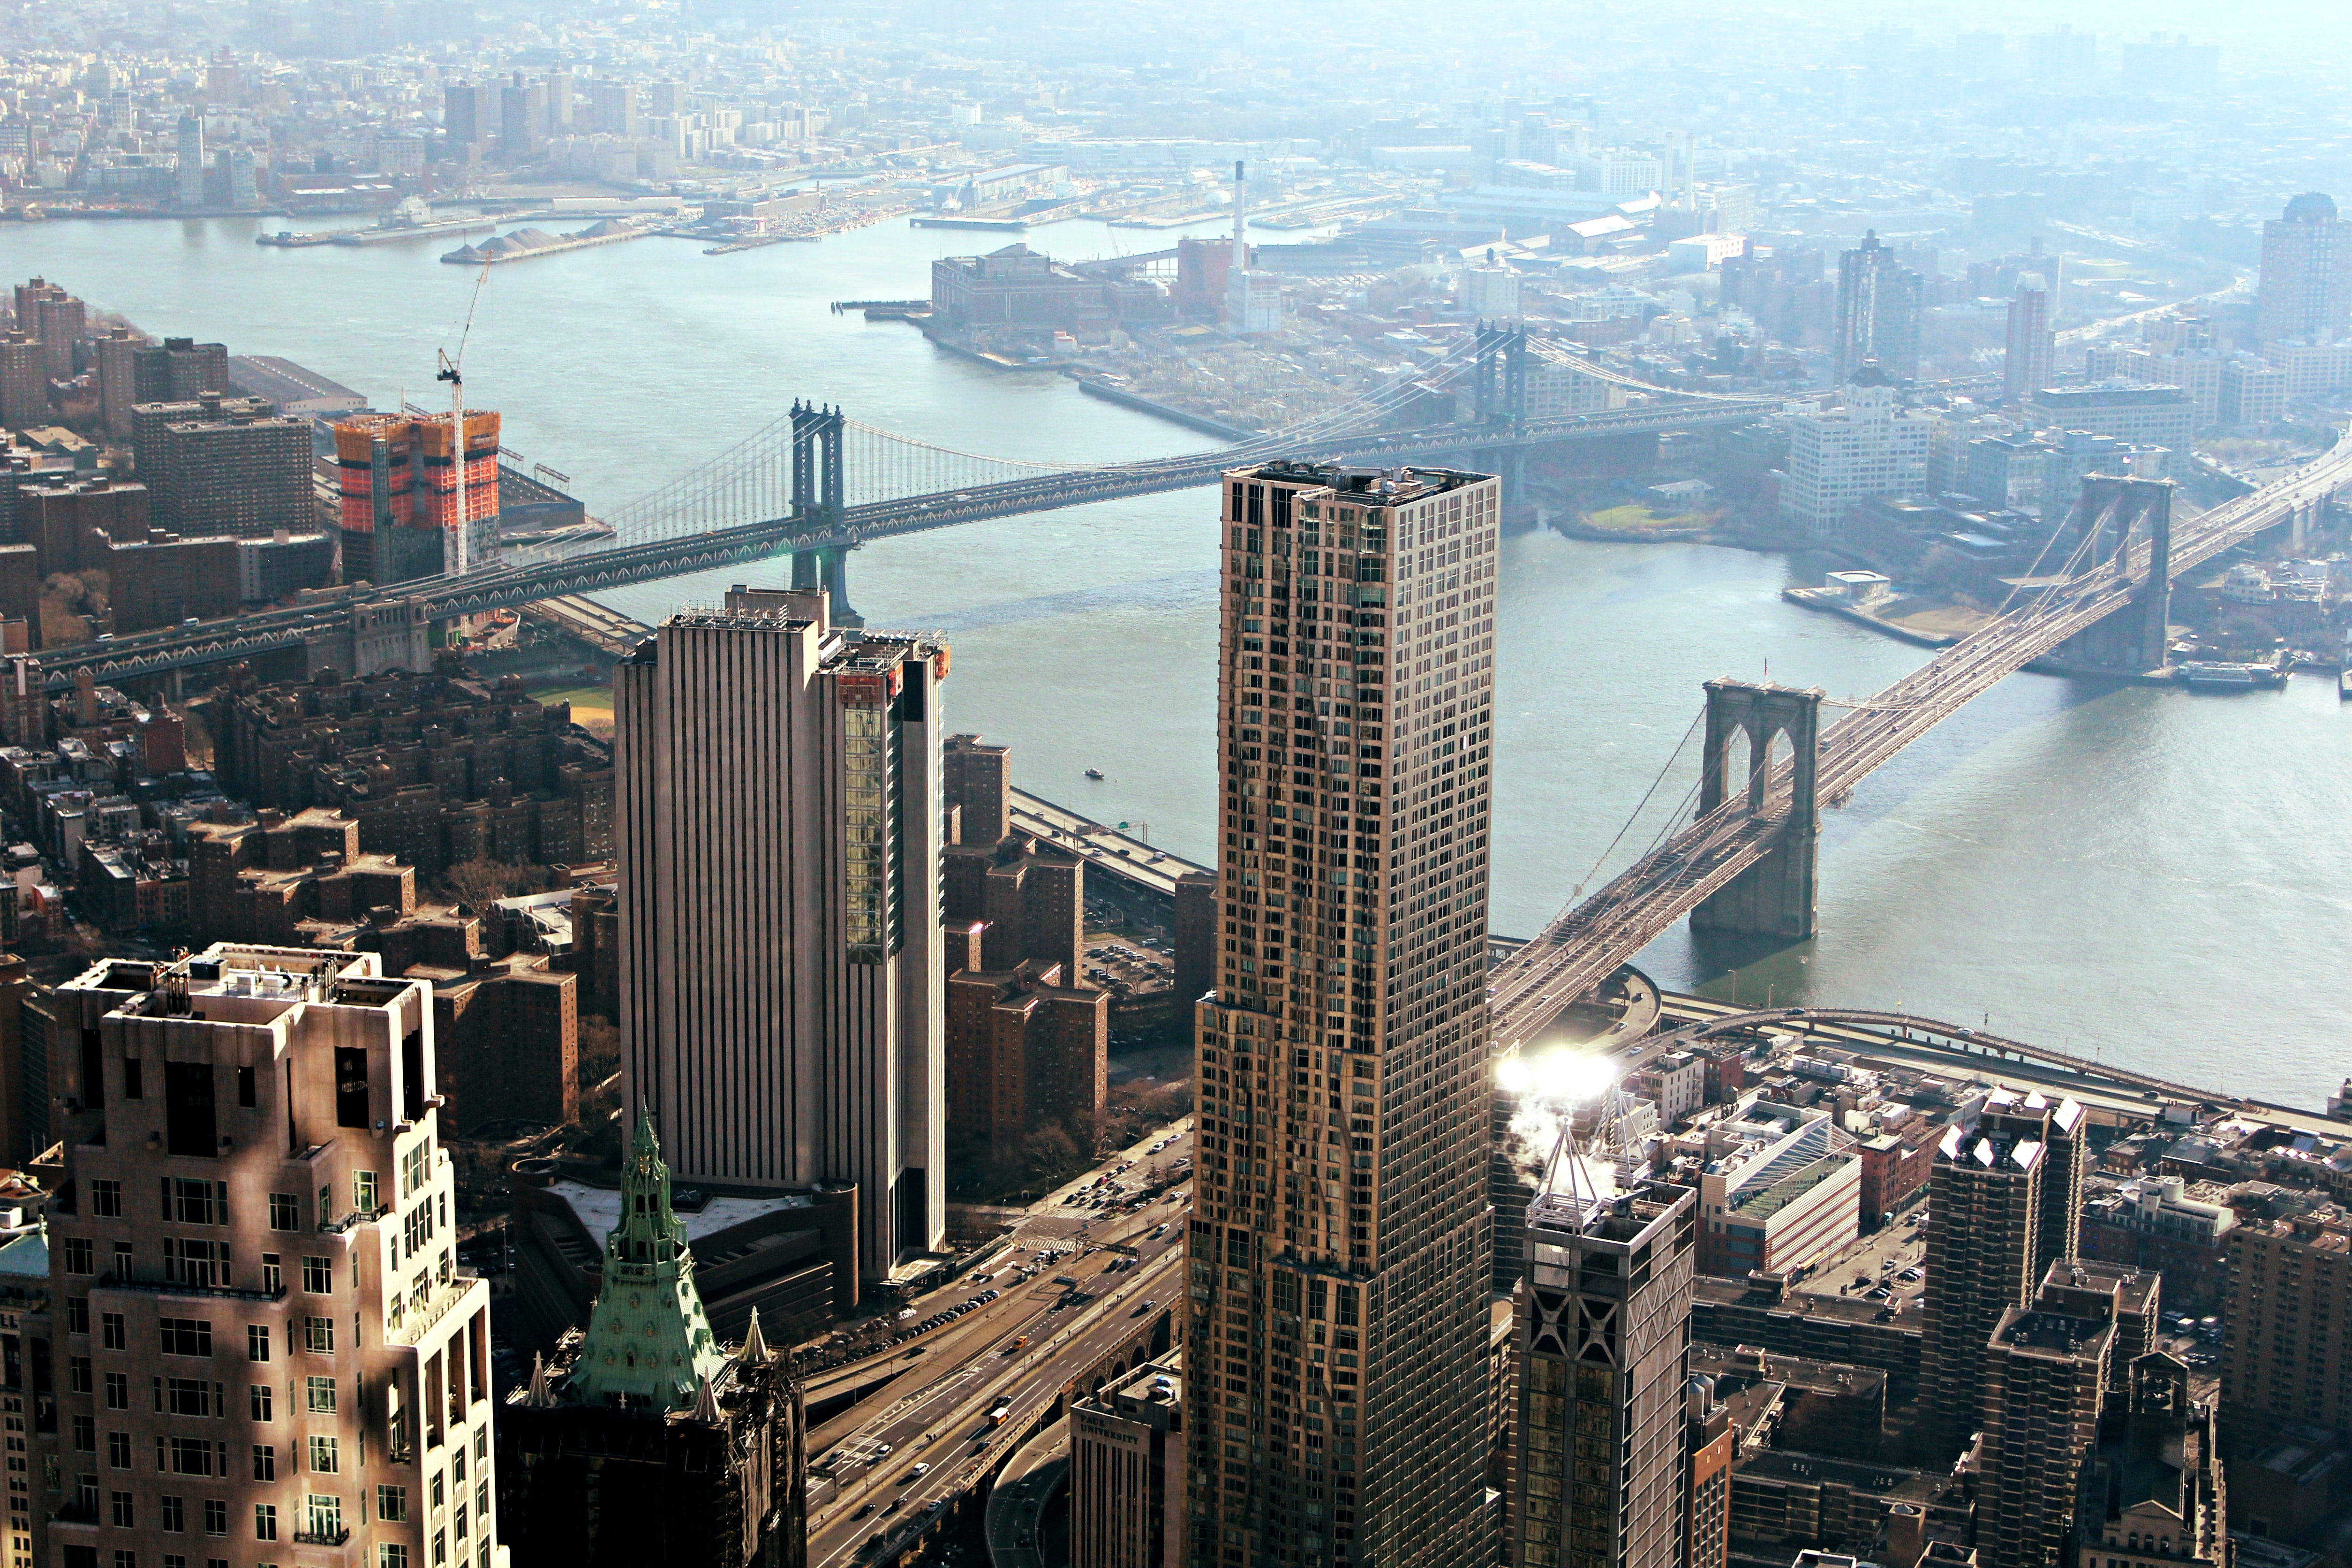 Aerial shot over the skyscrapers and bridges of NYC